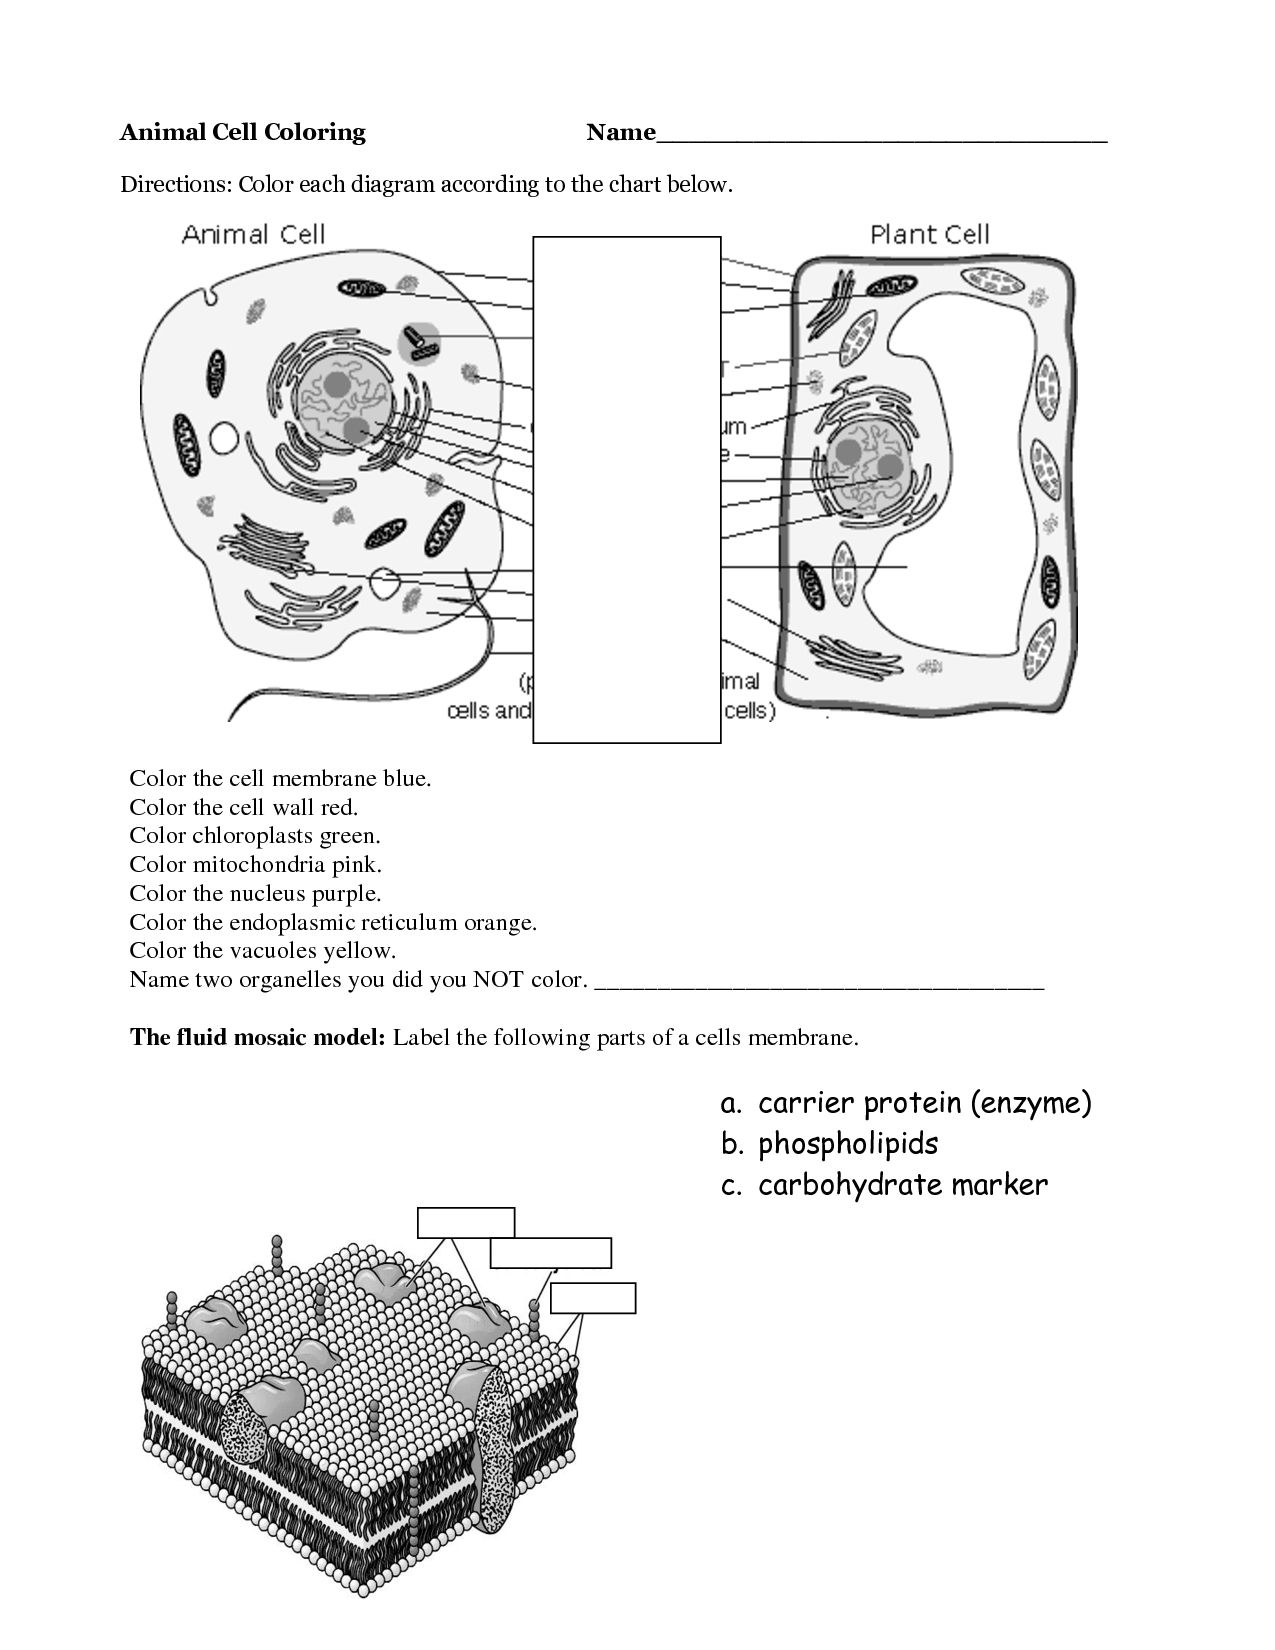 coloring plant and animal cells mitochondria coloring pages and cells coloring plant animal